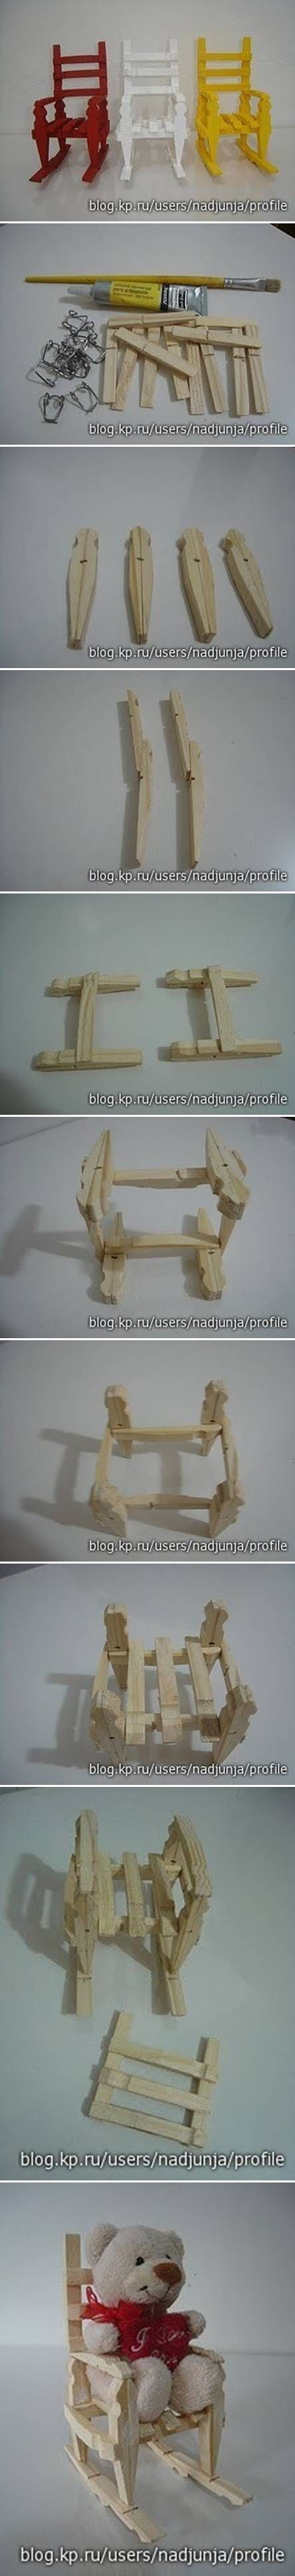 DIY Clothespin Rocking Chair DIY Clothespin Rocking Chair